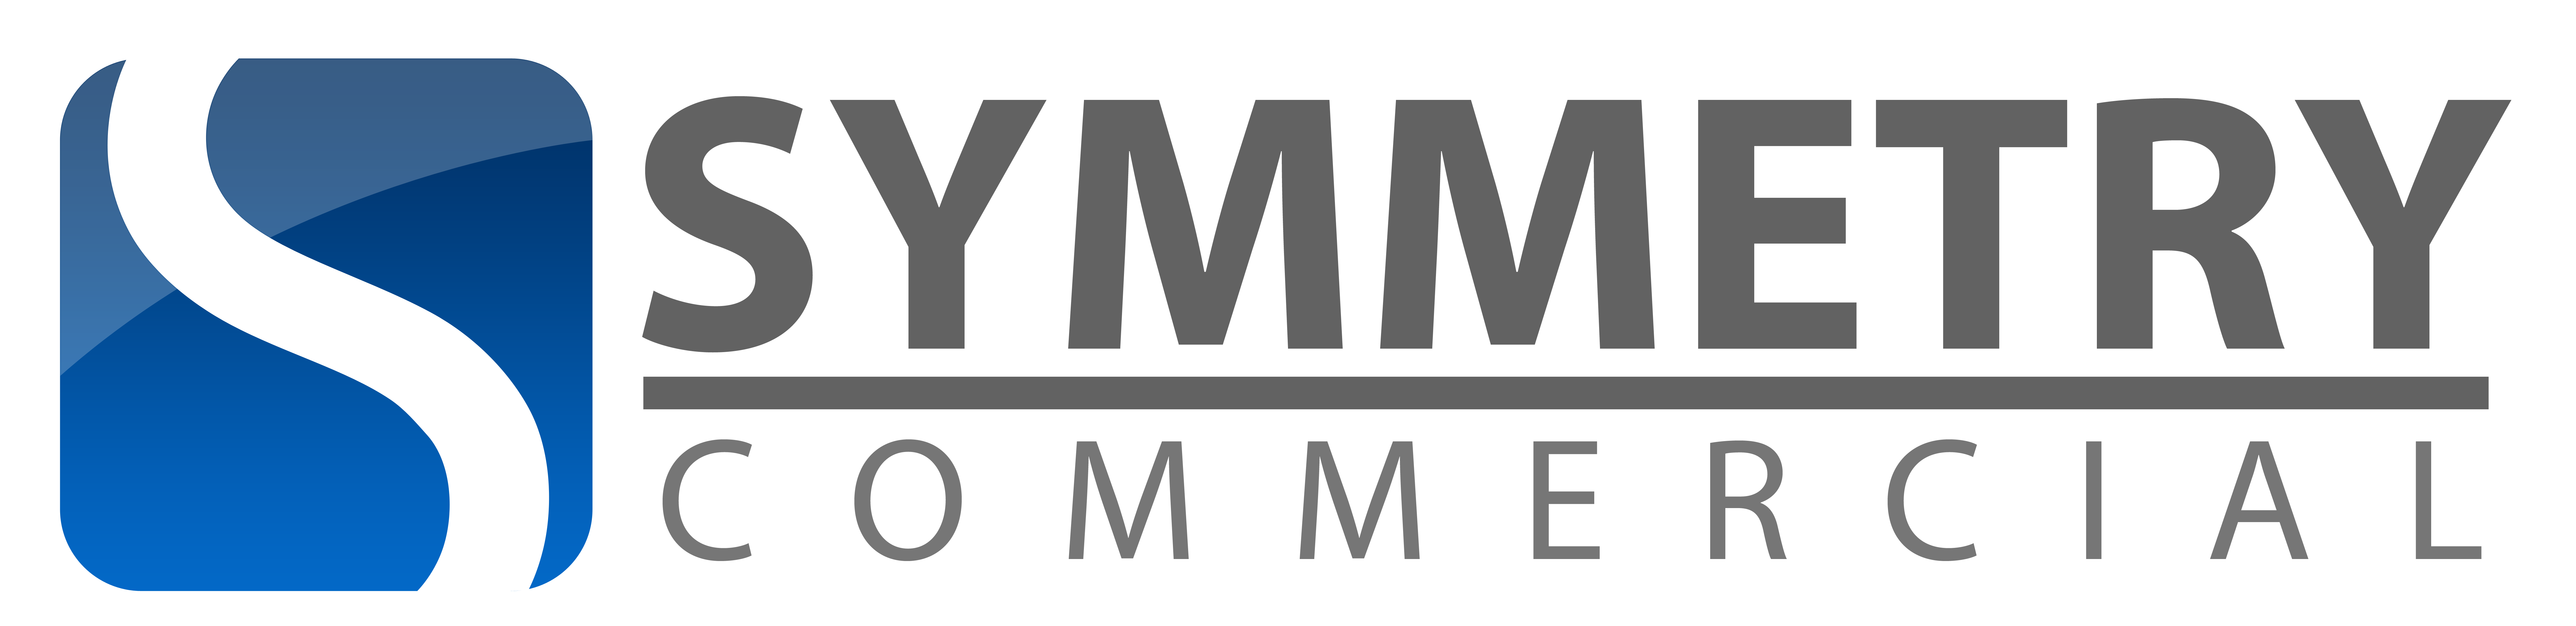 Symmetry_Commercial_logo